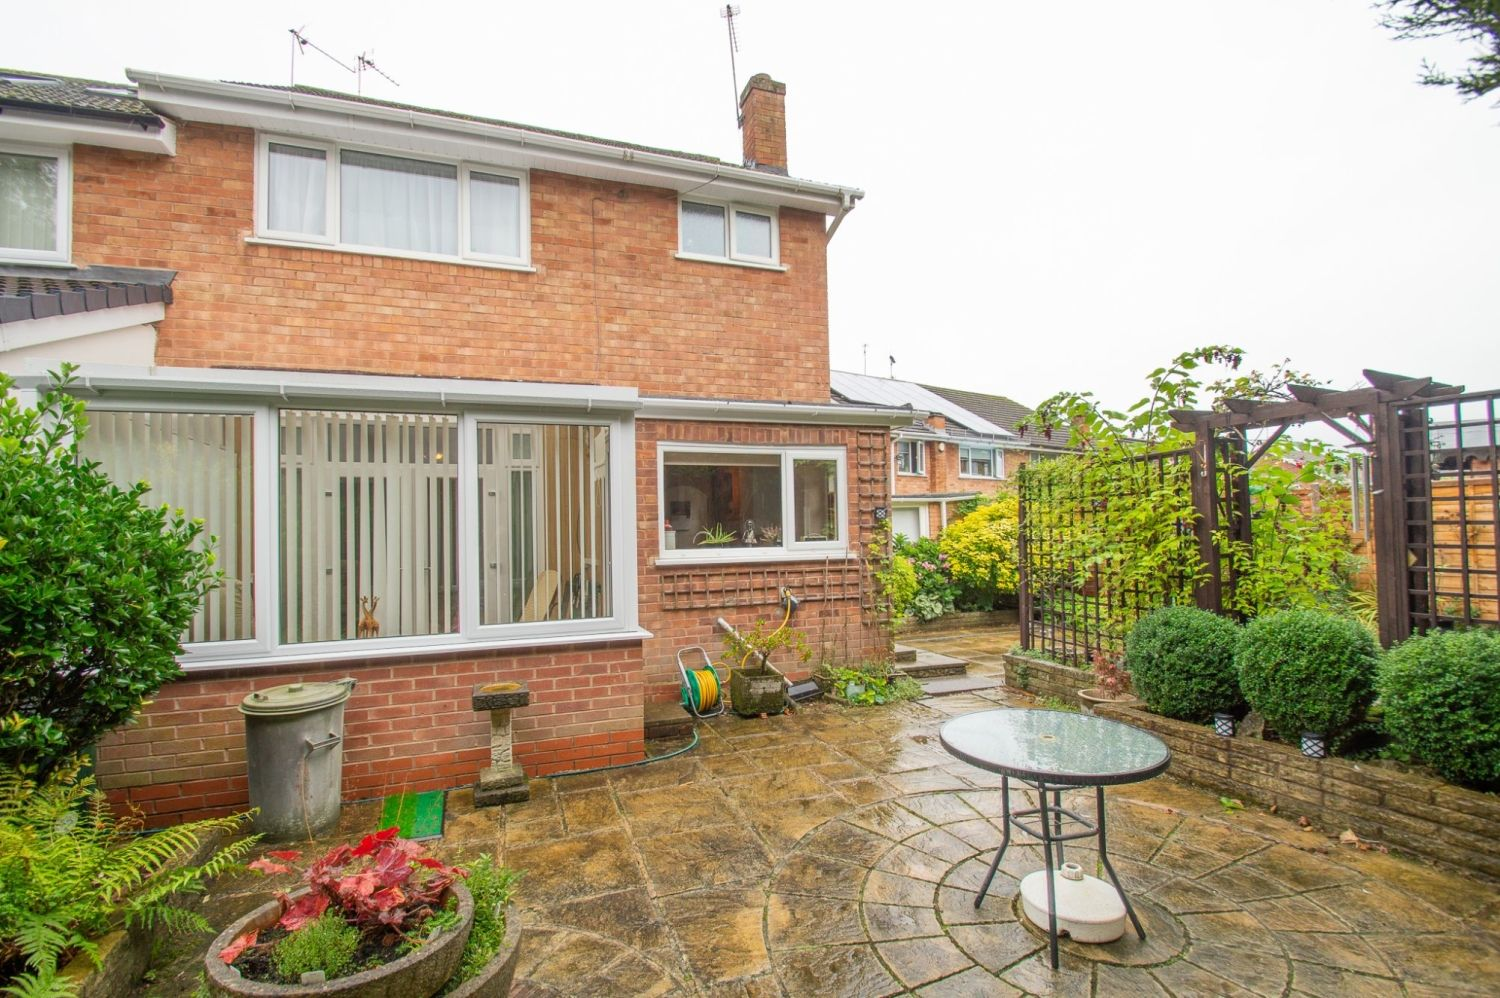 3 bed semi-detached for sale in Vicarage Crescent, Redditch 15